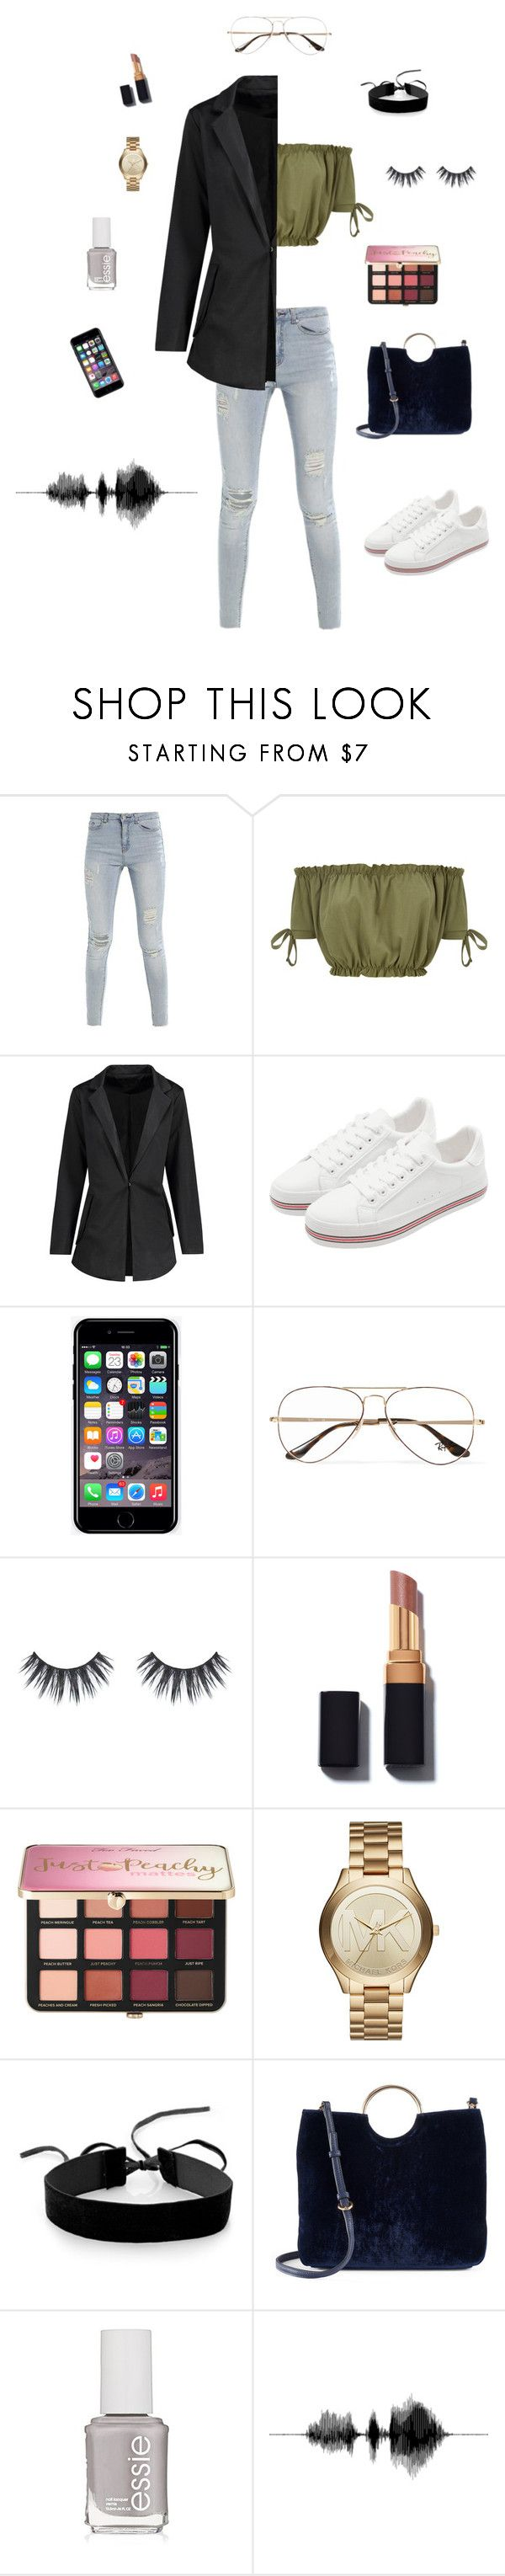 """""""Just because I'm bored"""" by jillian250 ❤ liked on Polyvore featuring Off-White, Ray-Ban, Sephora Collection, Michael Kors, Simons, LC Lauren Conrad and Essie"""